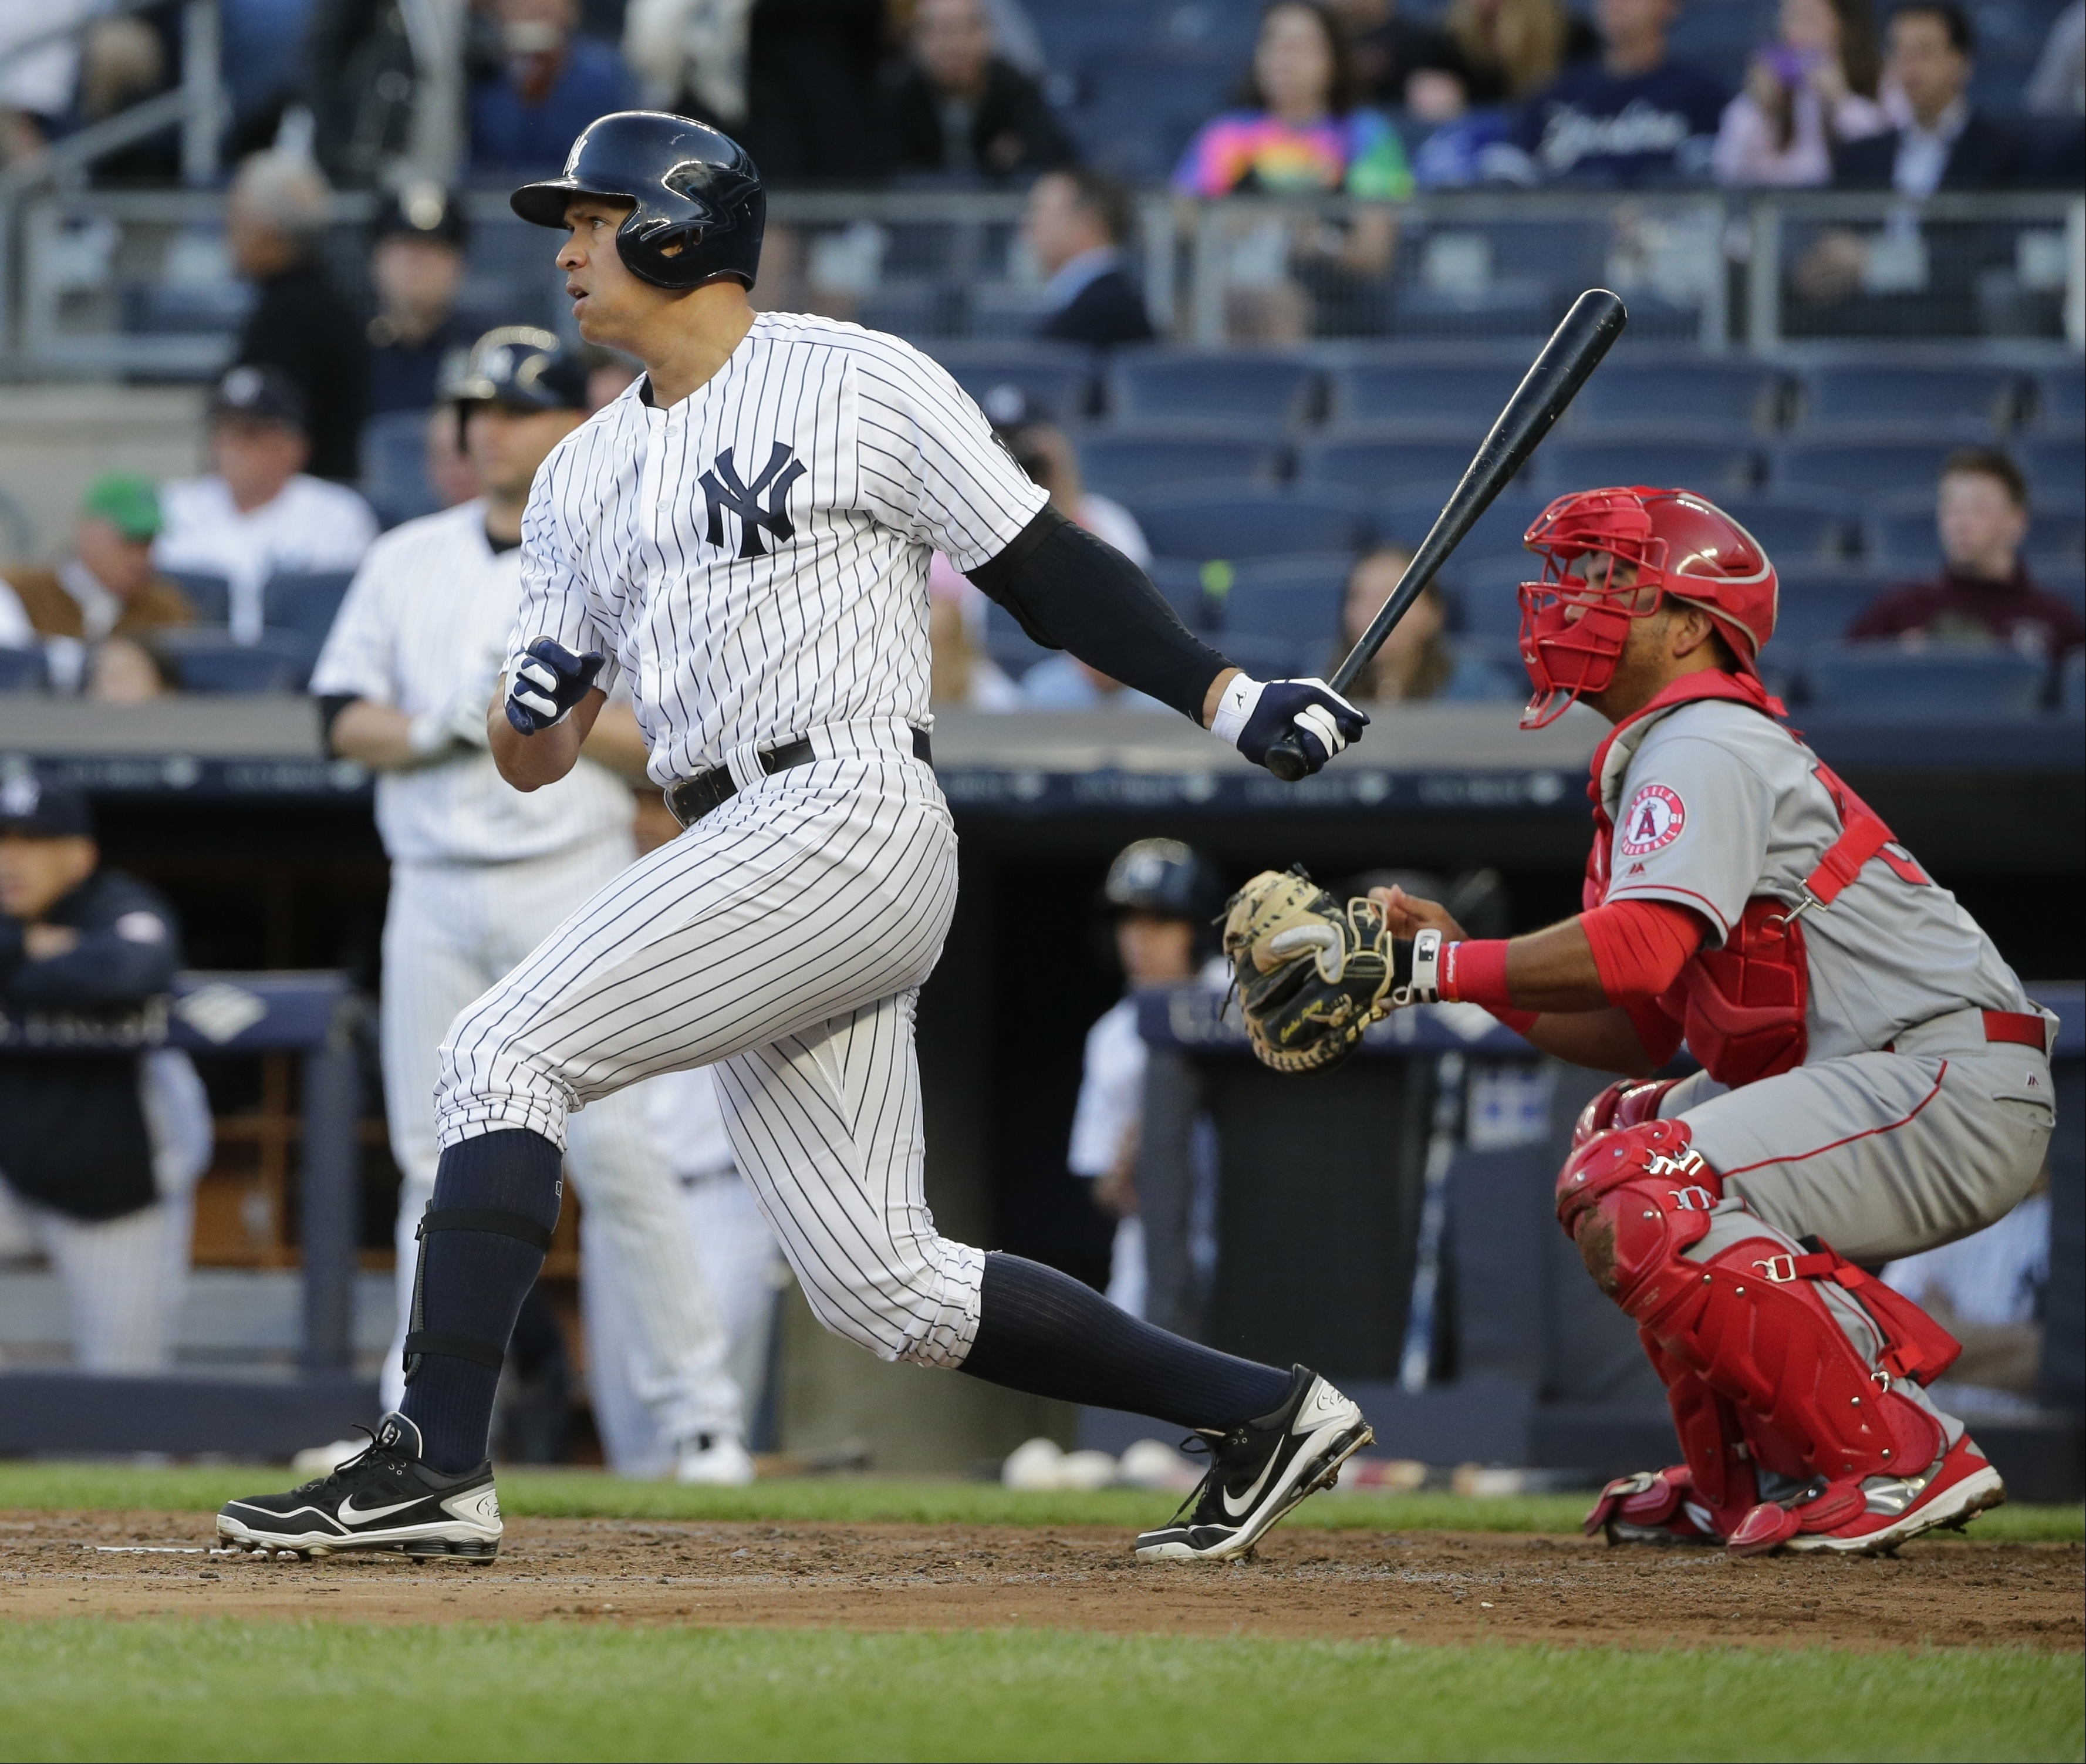 New York Yankees' Alex Rodriguez follows through on an RBI single during the first inning of a baseball game as Los Angeles Angels catcher Carlos Perez watches, Wednesday, June 8, 2016, in New York. (AP Photo/Frank Franklin II)